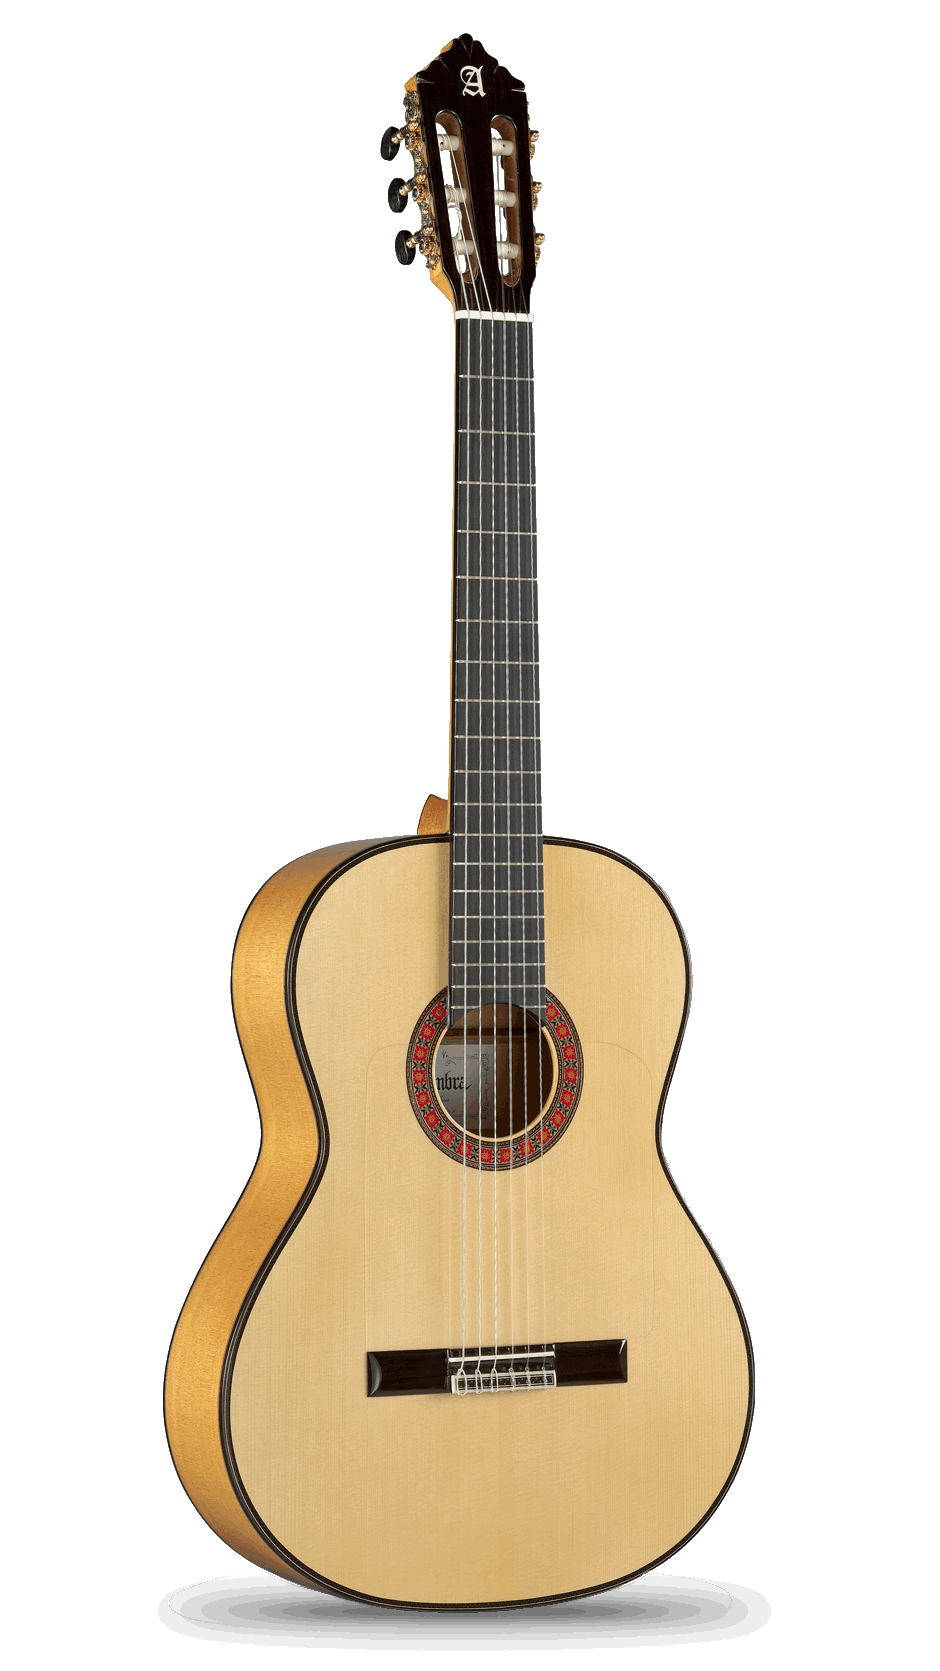 Flamenco Alhambra Guitars